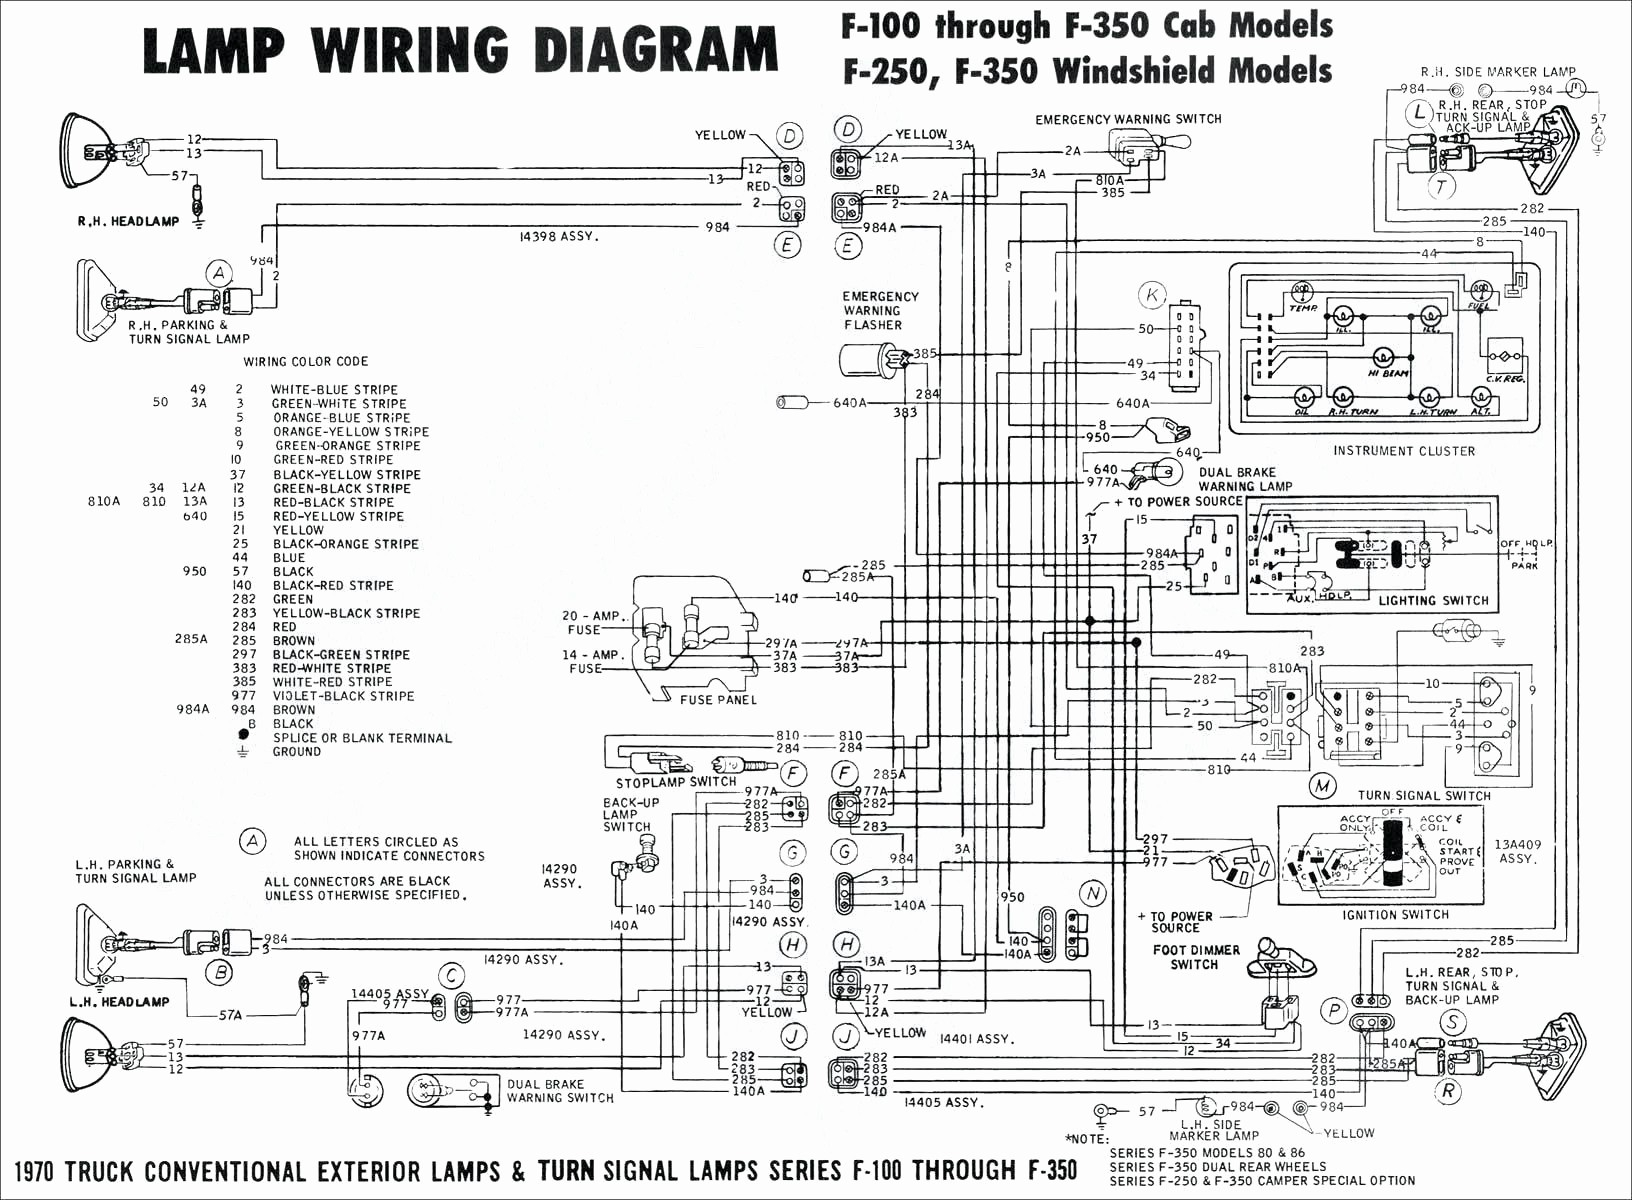 pcm wiring diagram chrysler pacifica 2004 chrysler pacifica wiring schematic | free wiring diagram